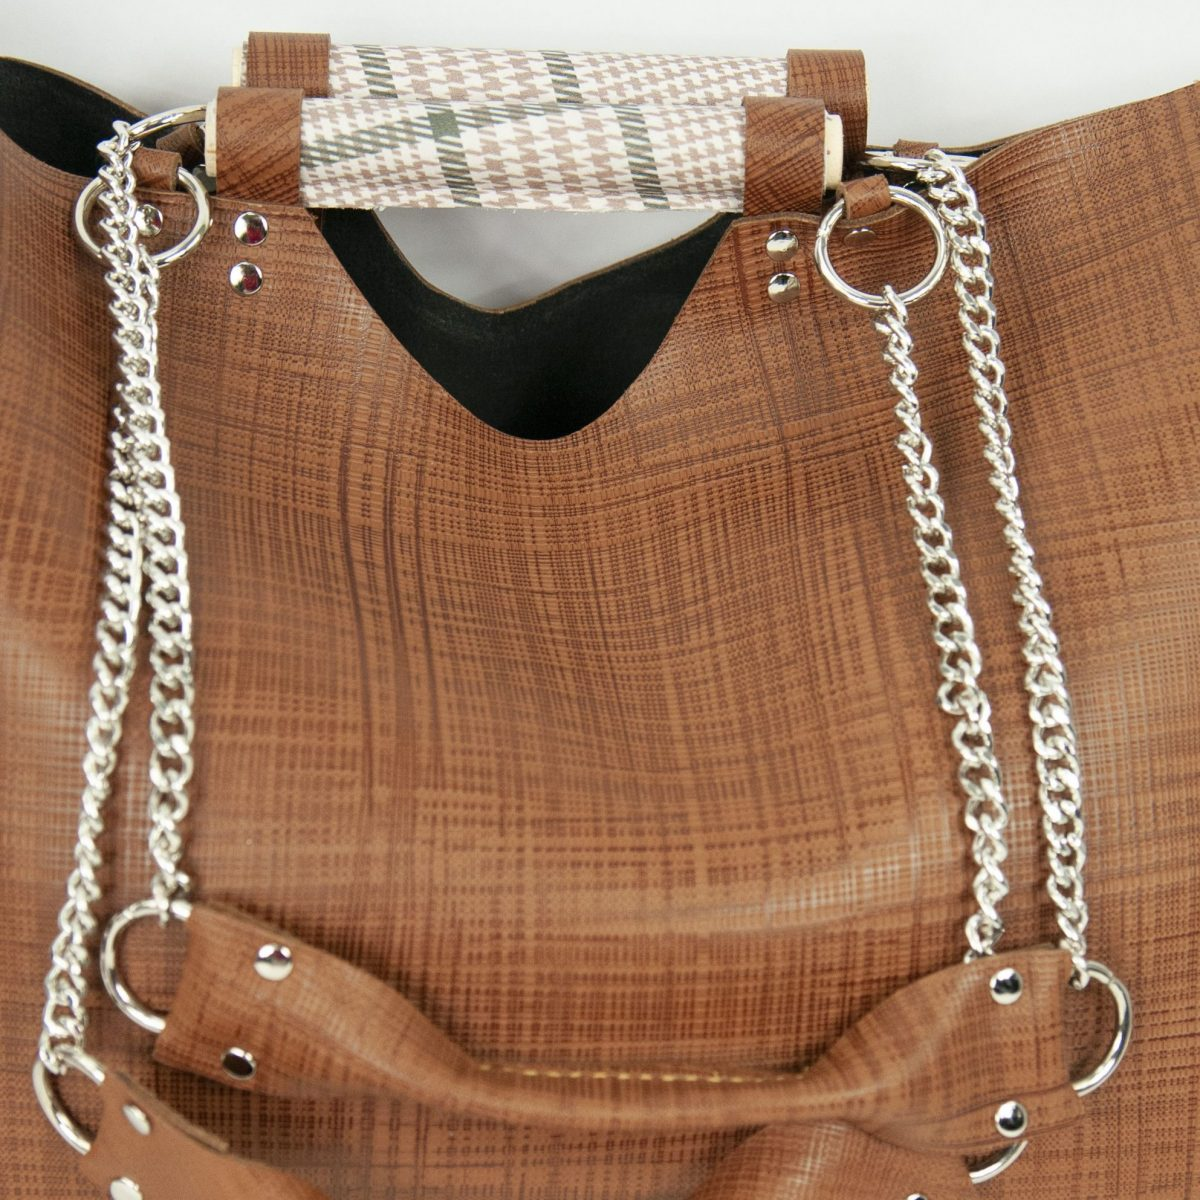 SHOPPER DE PIEL MARRON